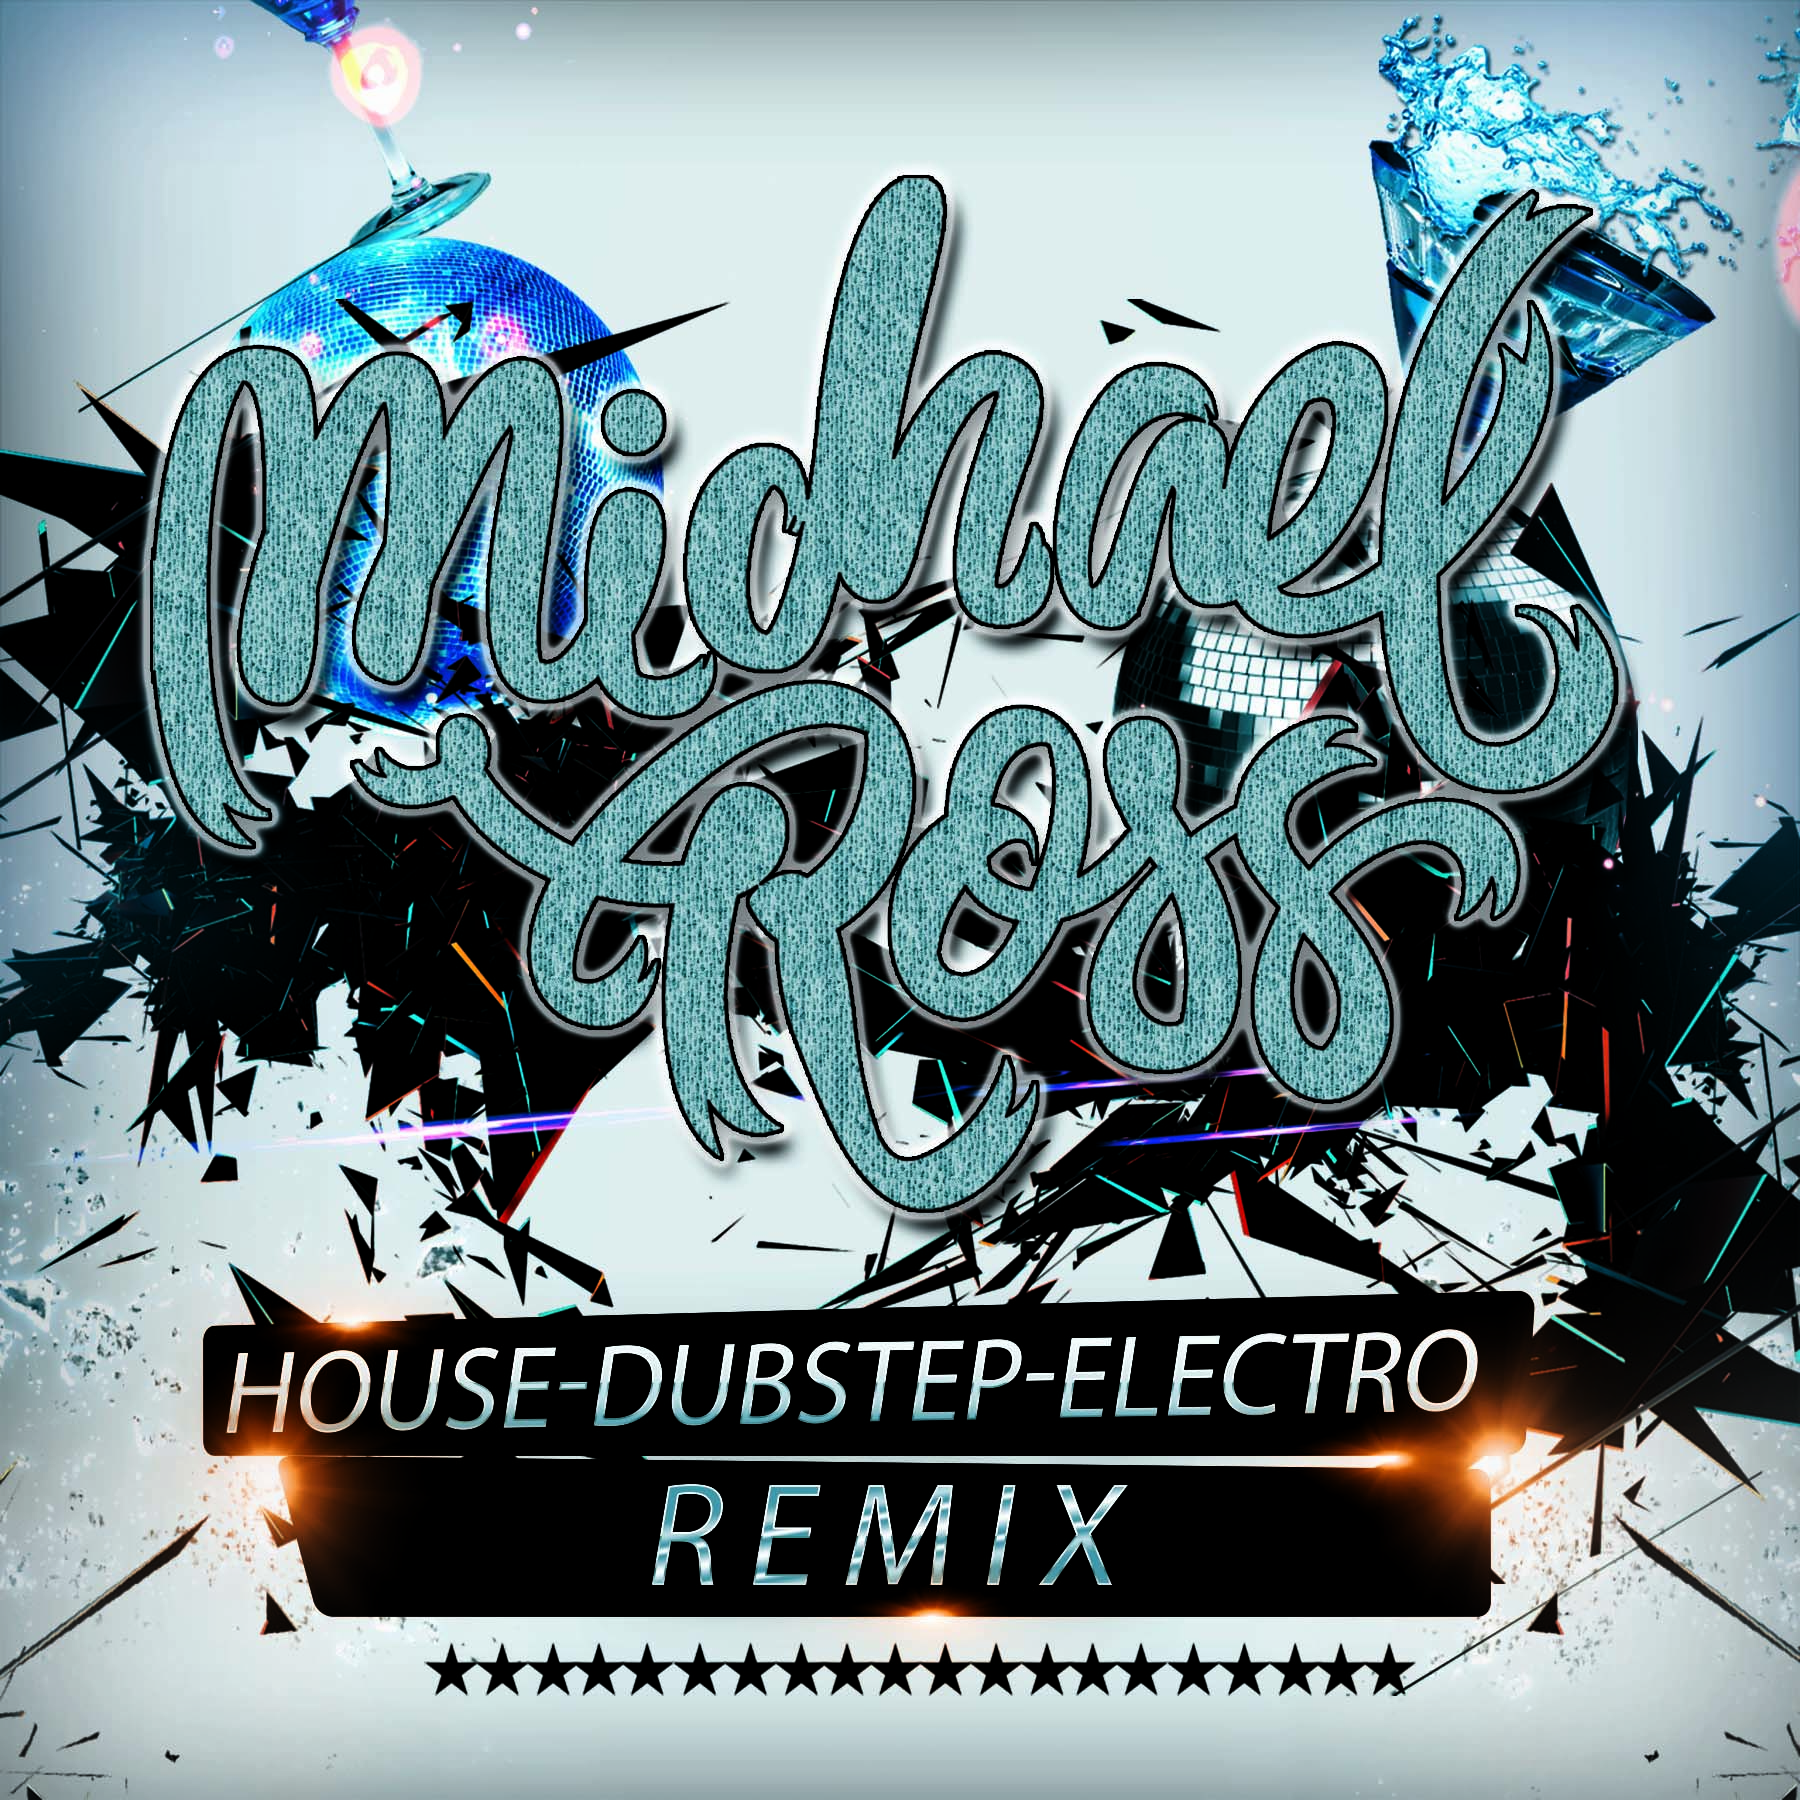 Caratula - Remix House-Dubstep-Electro